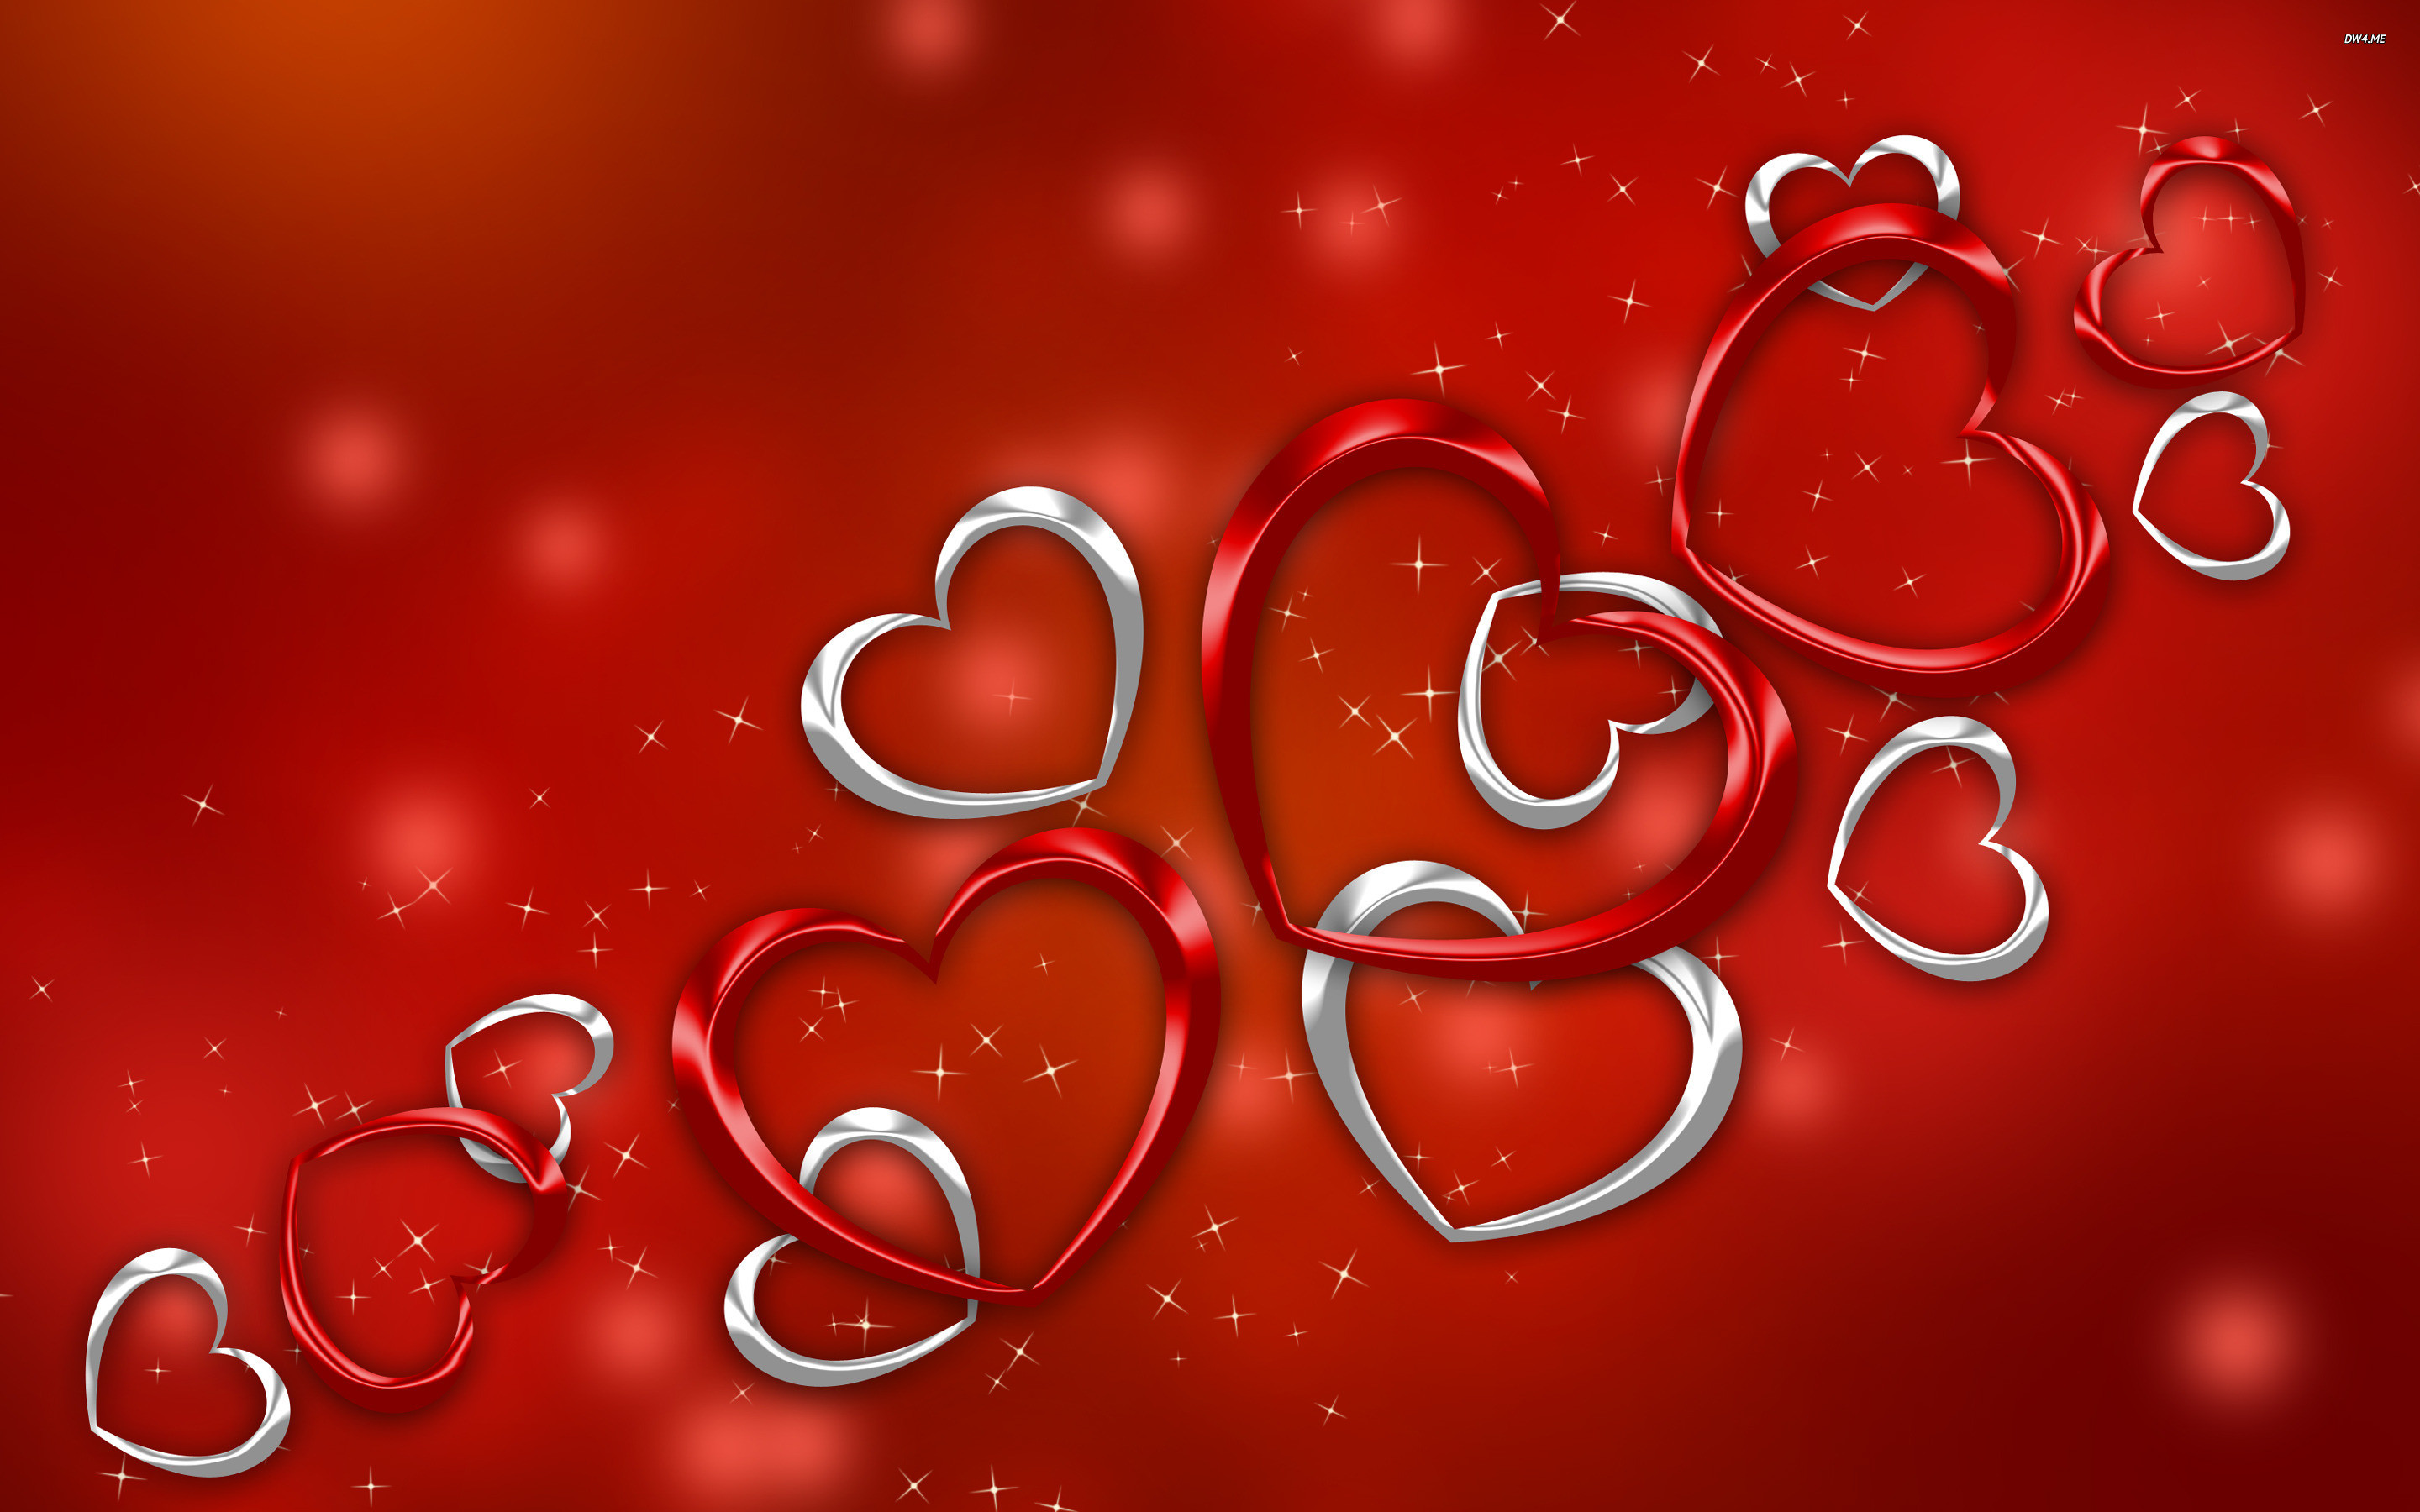 Red and silver hearts wallpaper – Holiday wallpapers – #2110